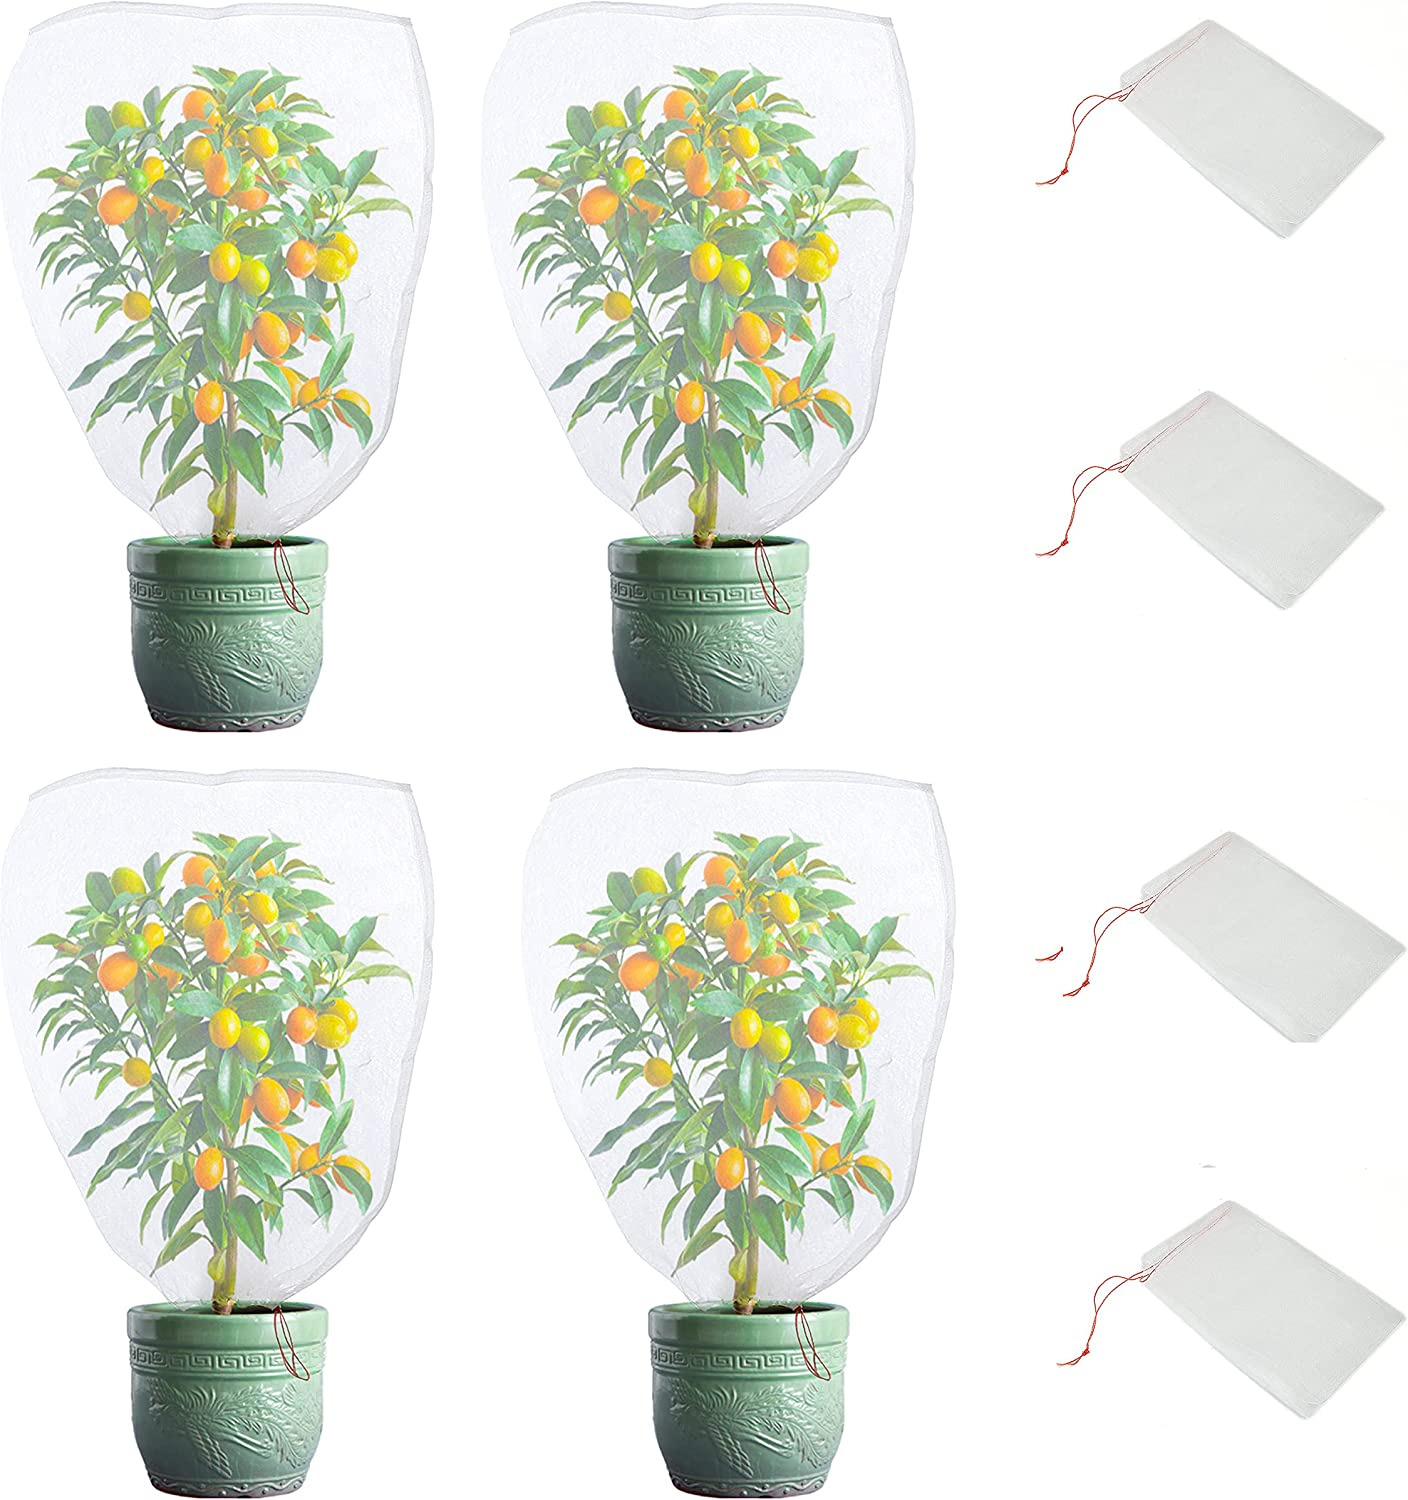 4 Pieces Plant Net Bags with Adjustable Drawstring Birds Netting Fruit Bags for Protectin Plants and Fruit Trees Flowers Garden Netting for pest Barrier Bag Deer